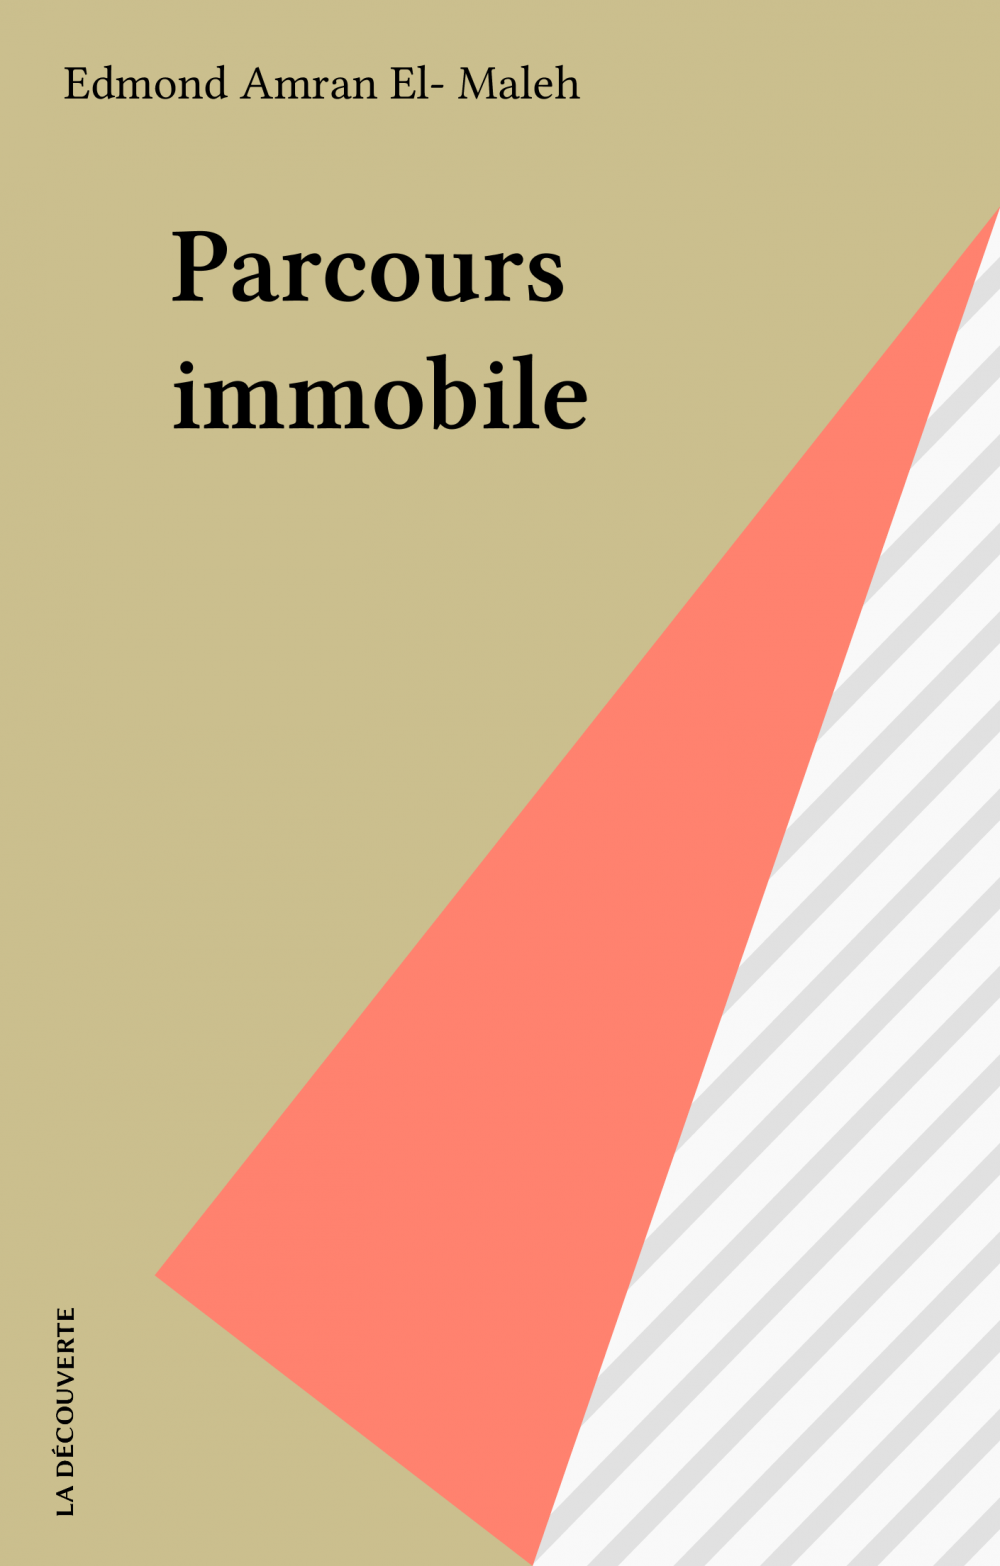 Parcours immobile